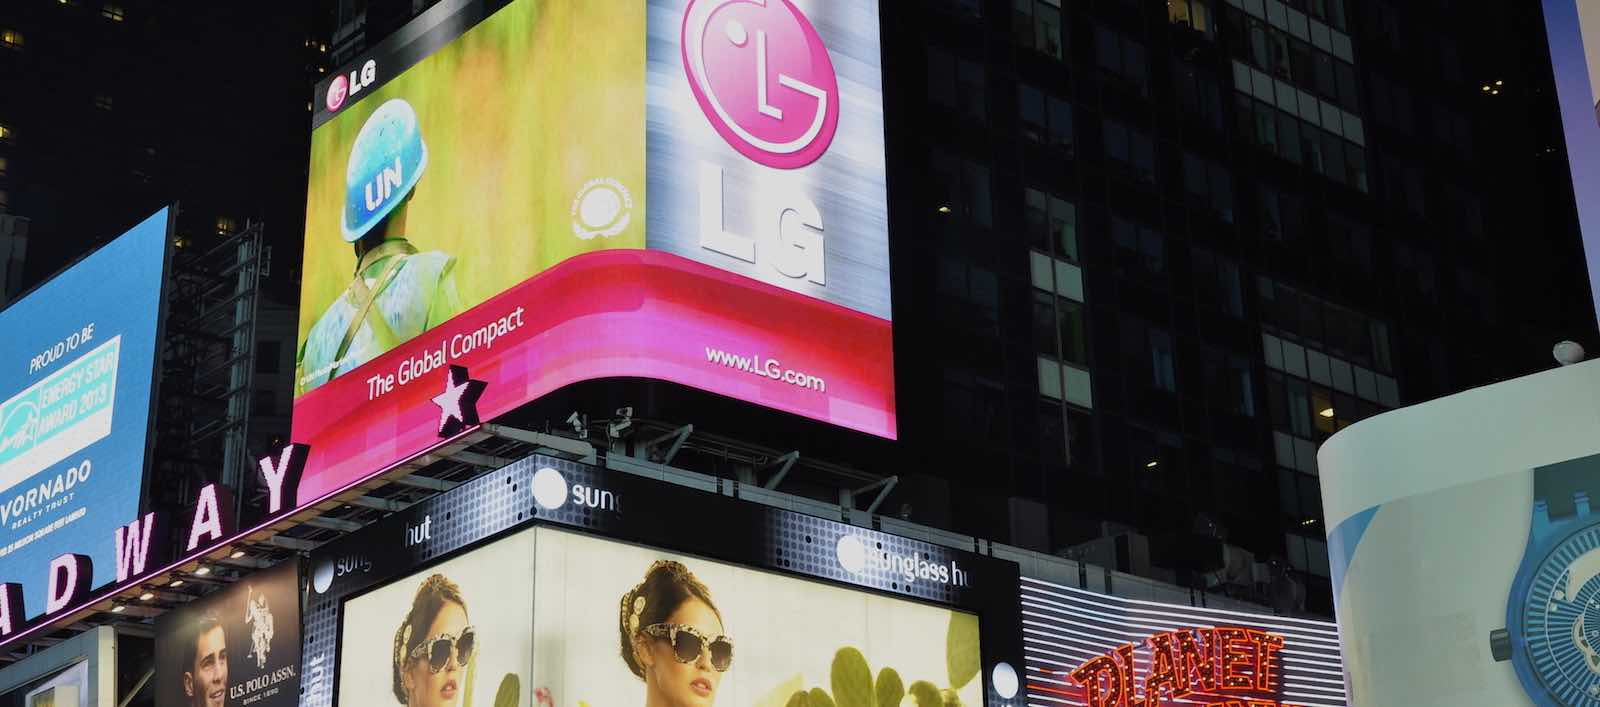 The UN Global Compact featured in advertising at New York's Times Square (Photo: UN Global Compact/Flickr)